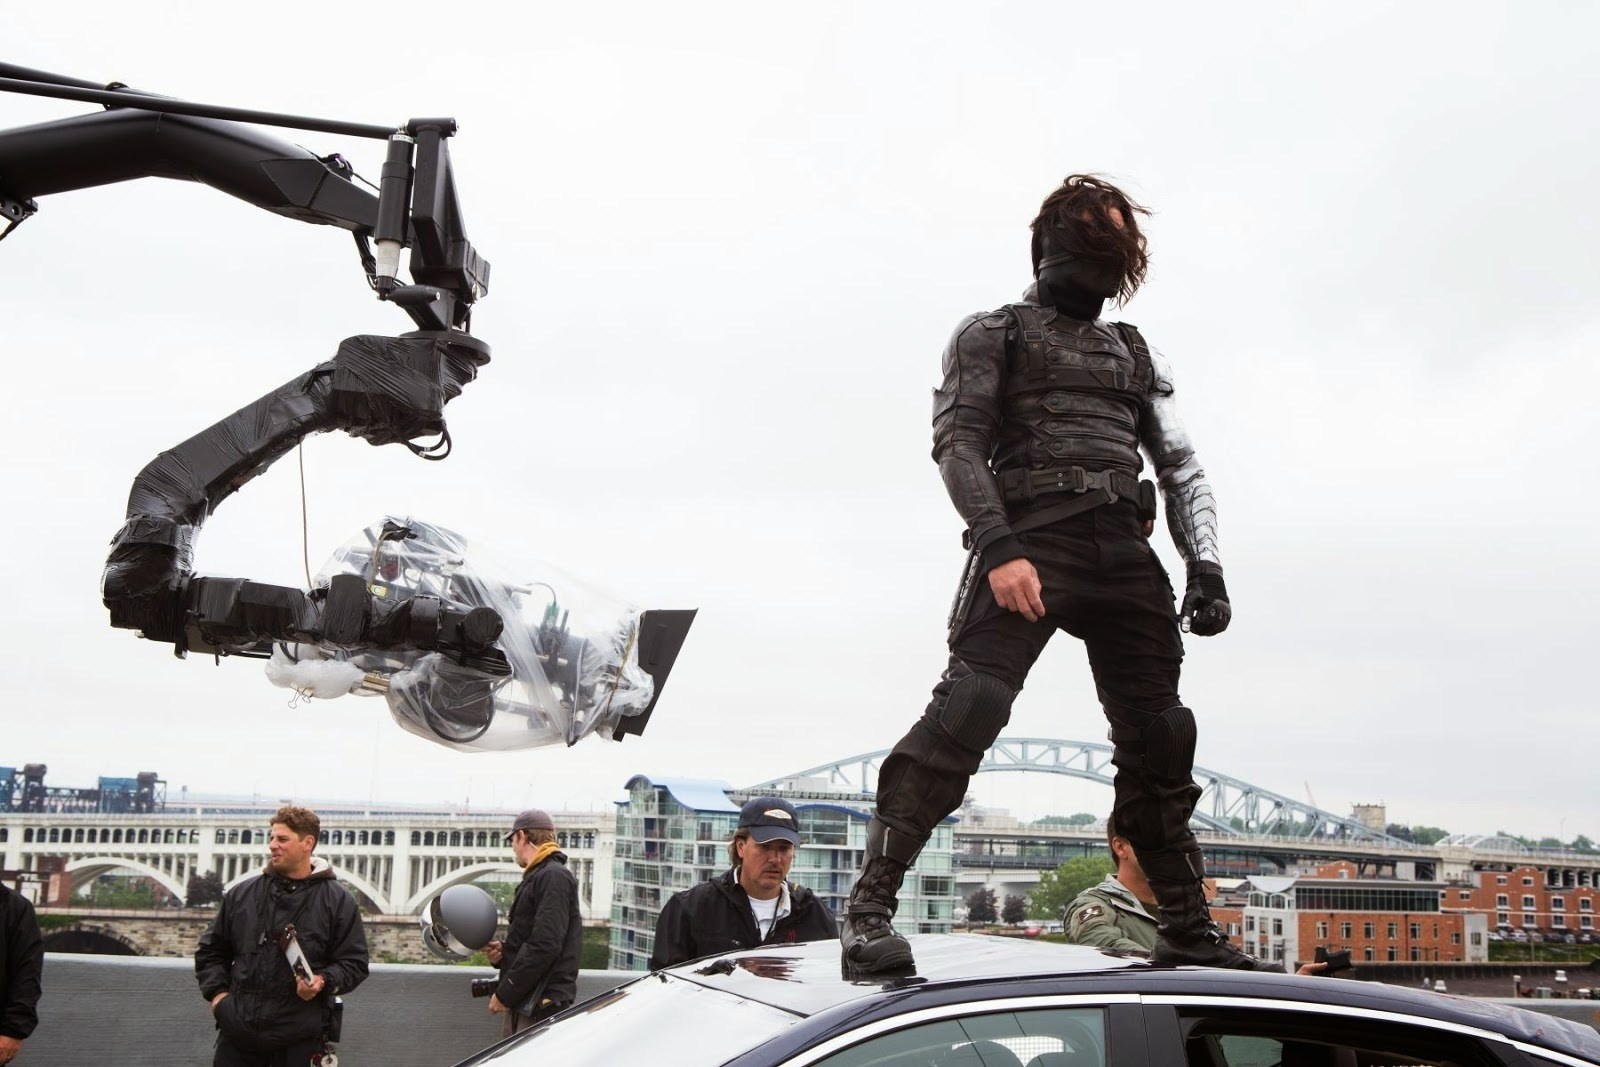 Captain America: The Winter Soldier (2014) Behind the Scenes